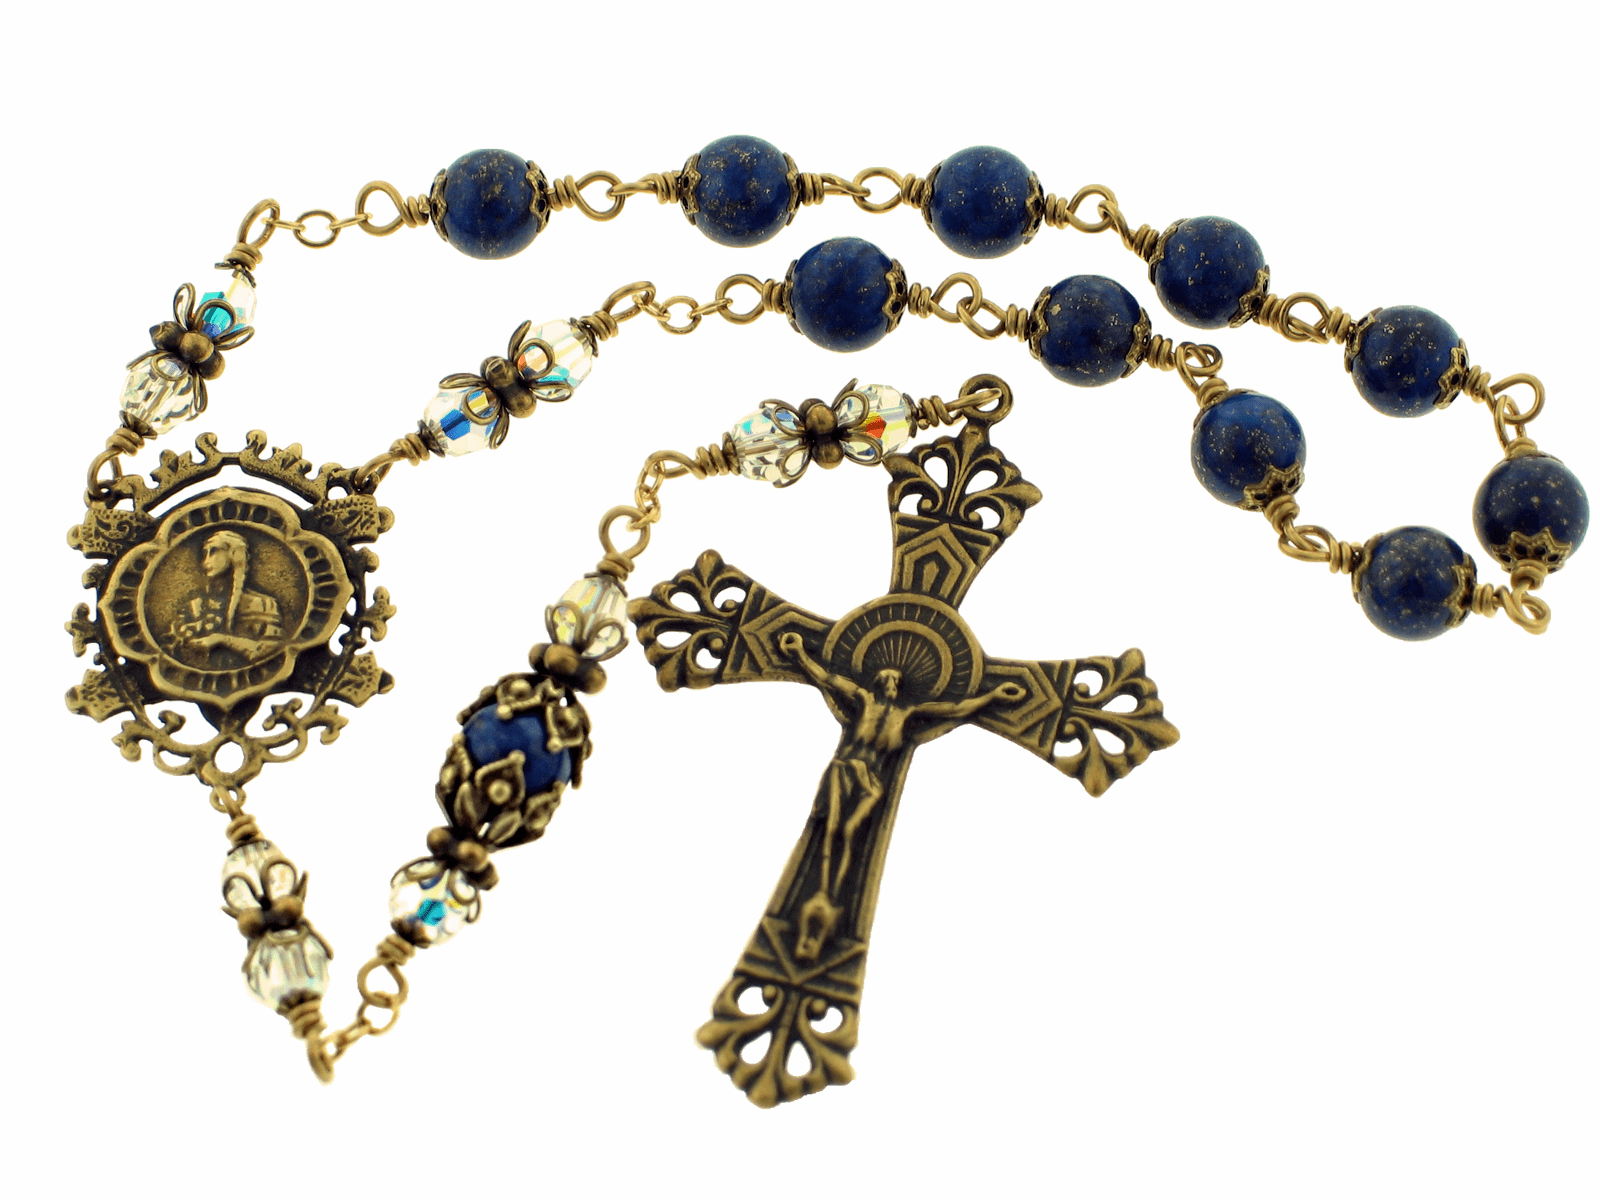 Heavenly Divine Bronze One Decade Pocket Rosaries